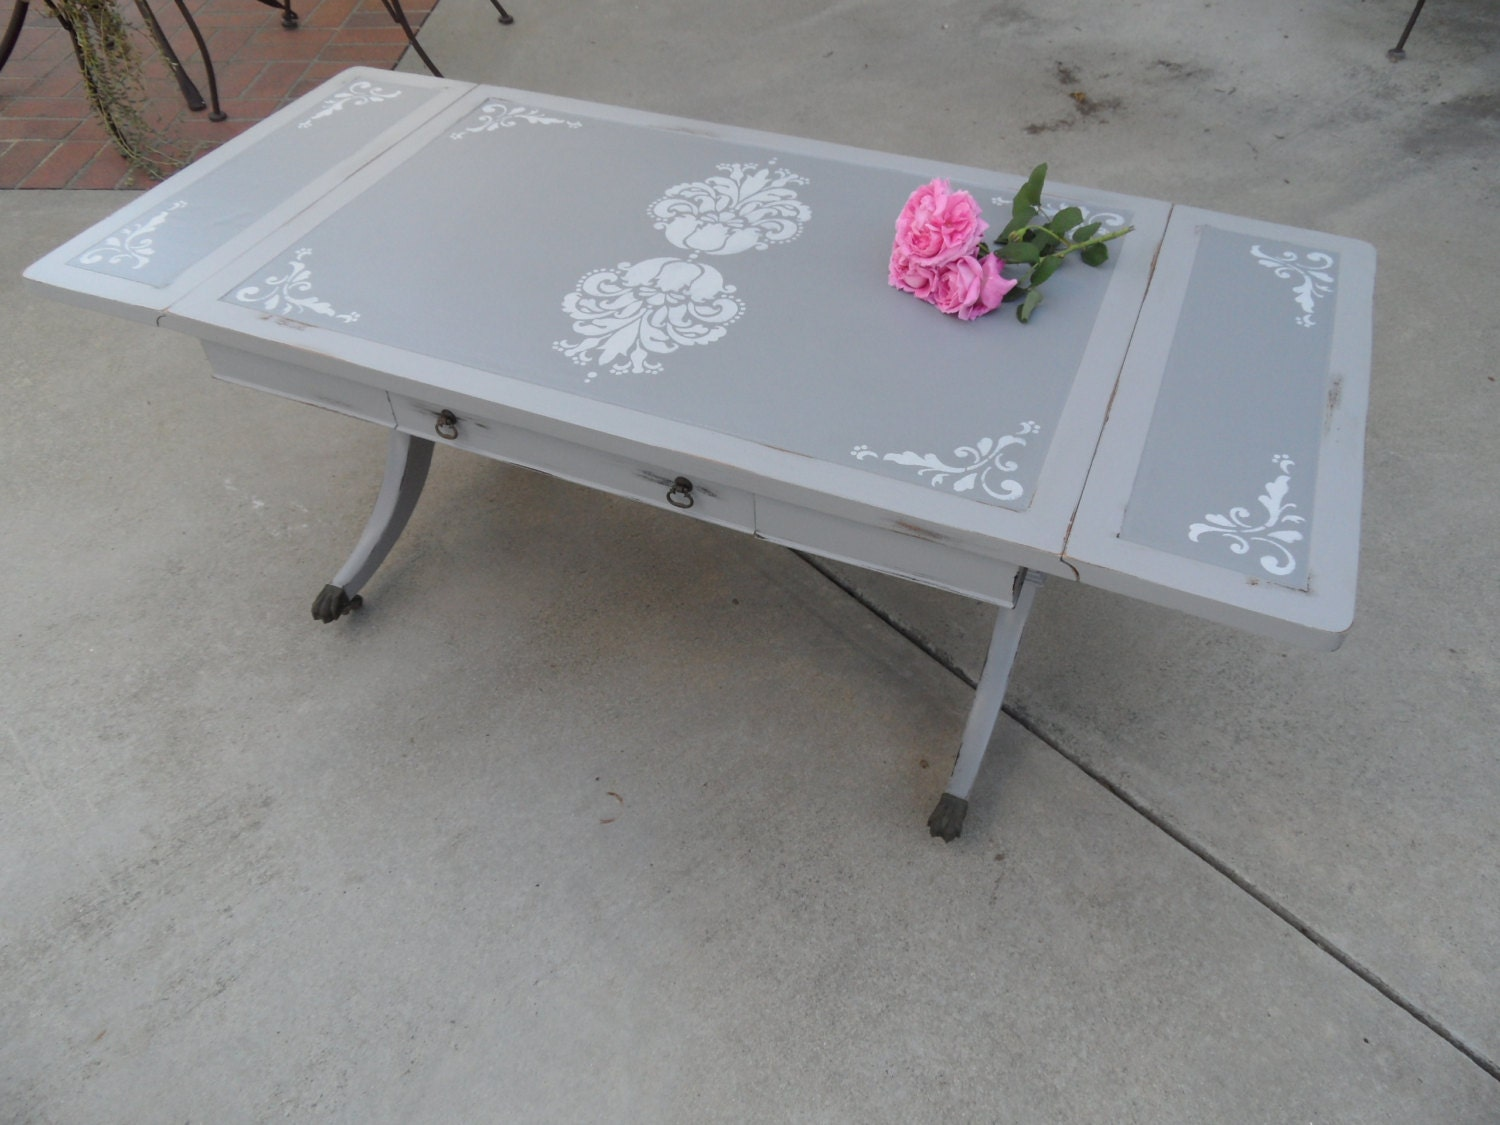 Vintage Drop Leaf Coffee Table with Drawer, Antique Gray Stenciled Table, - Drop Leaf Table Etsy